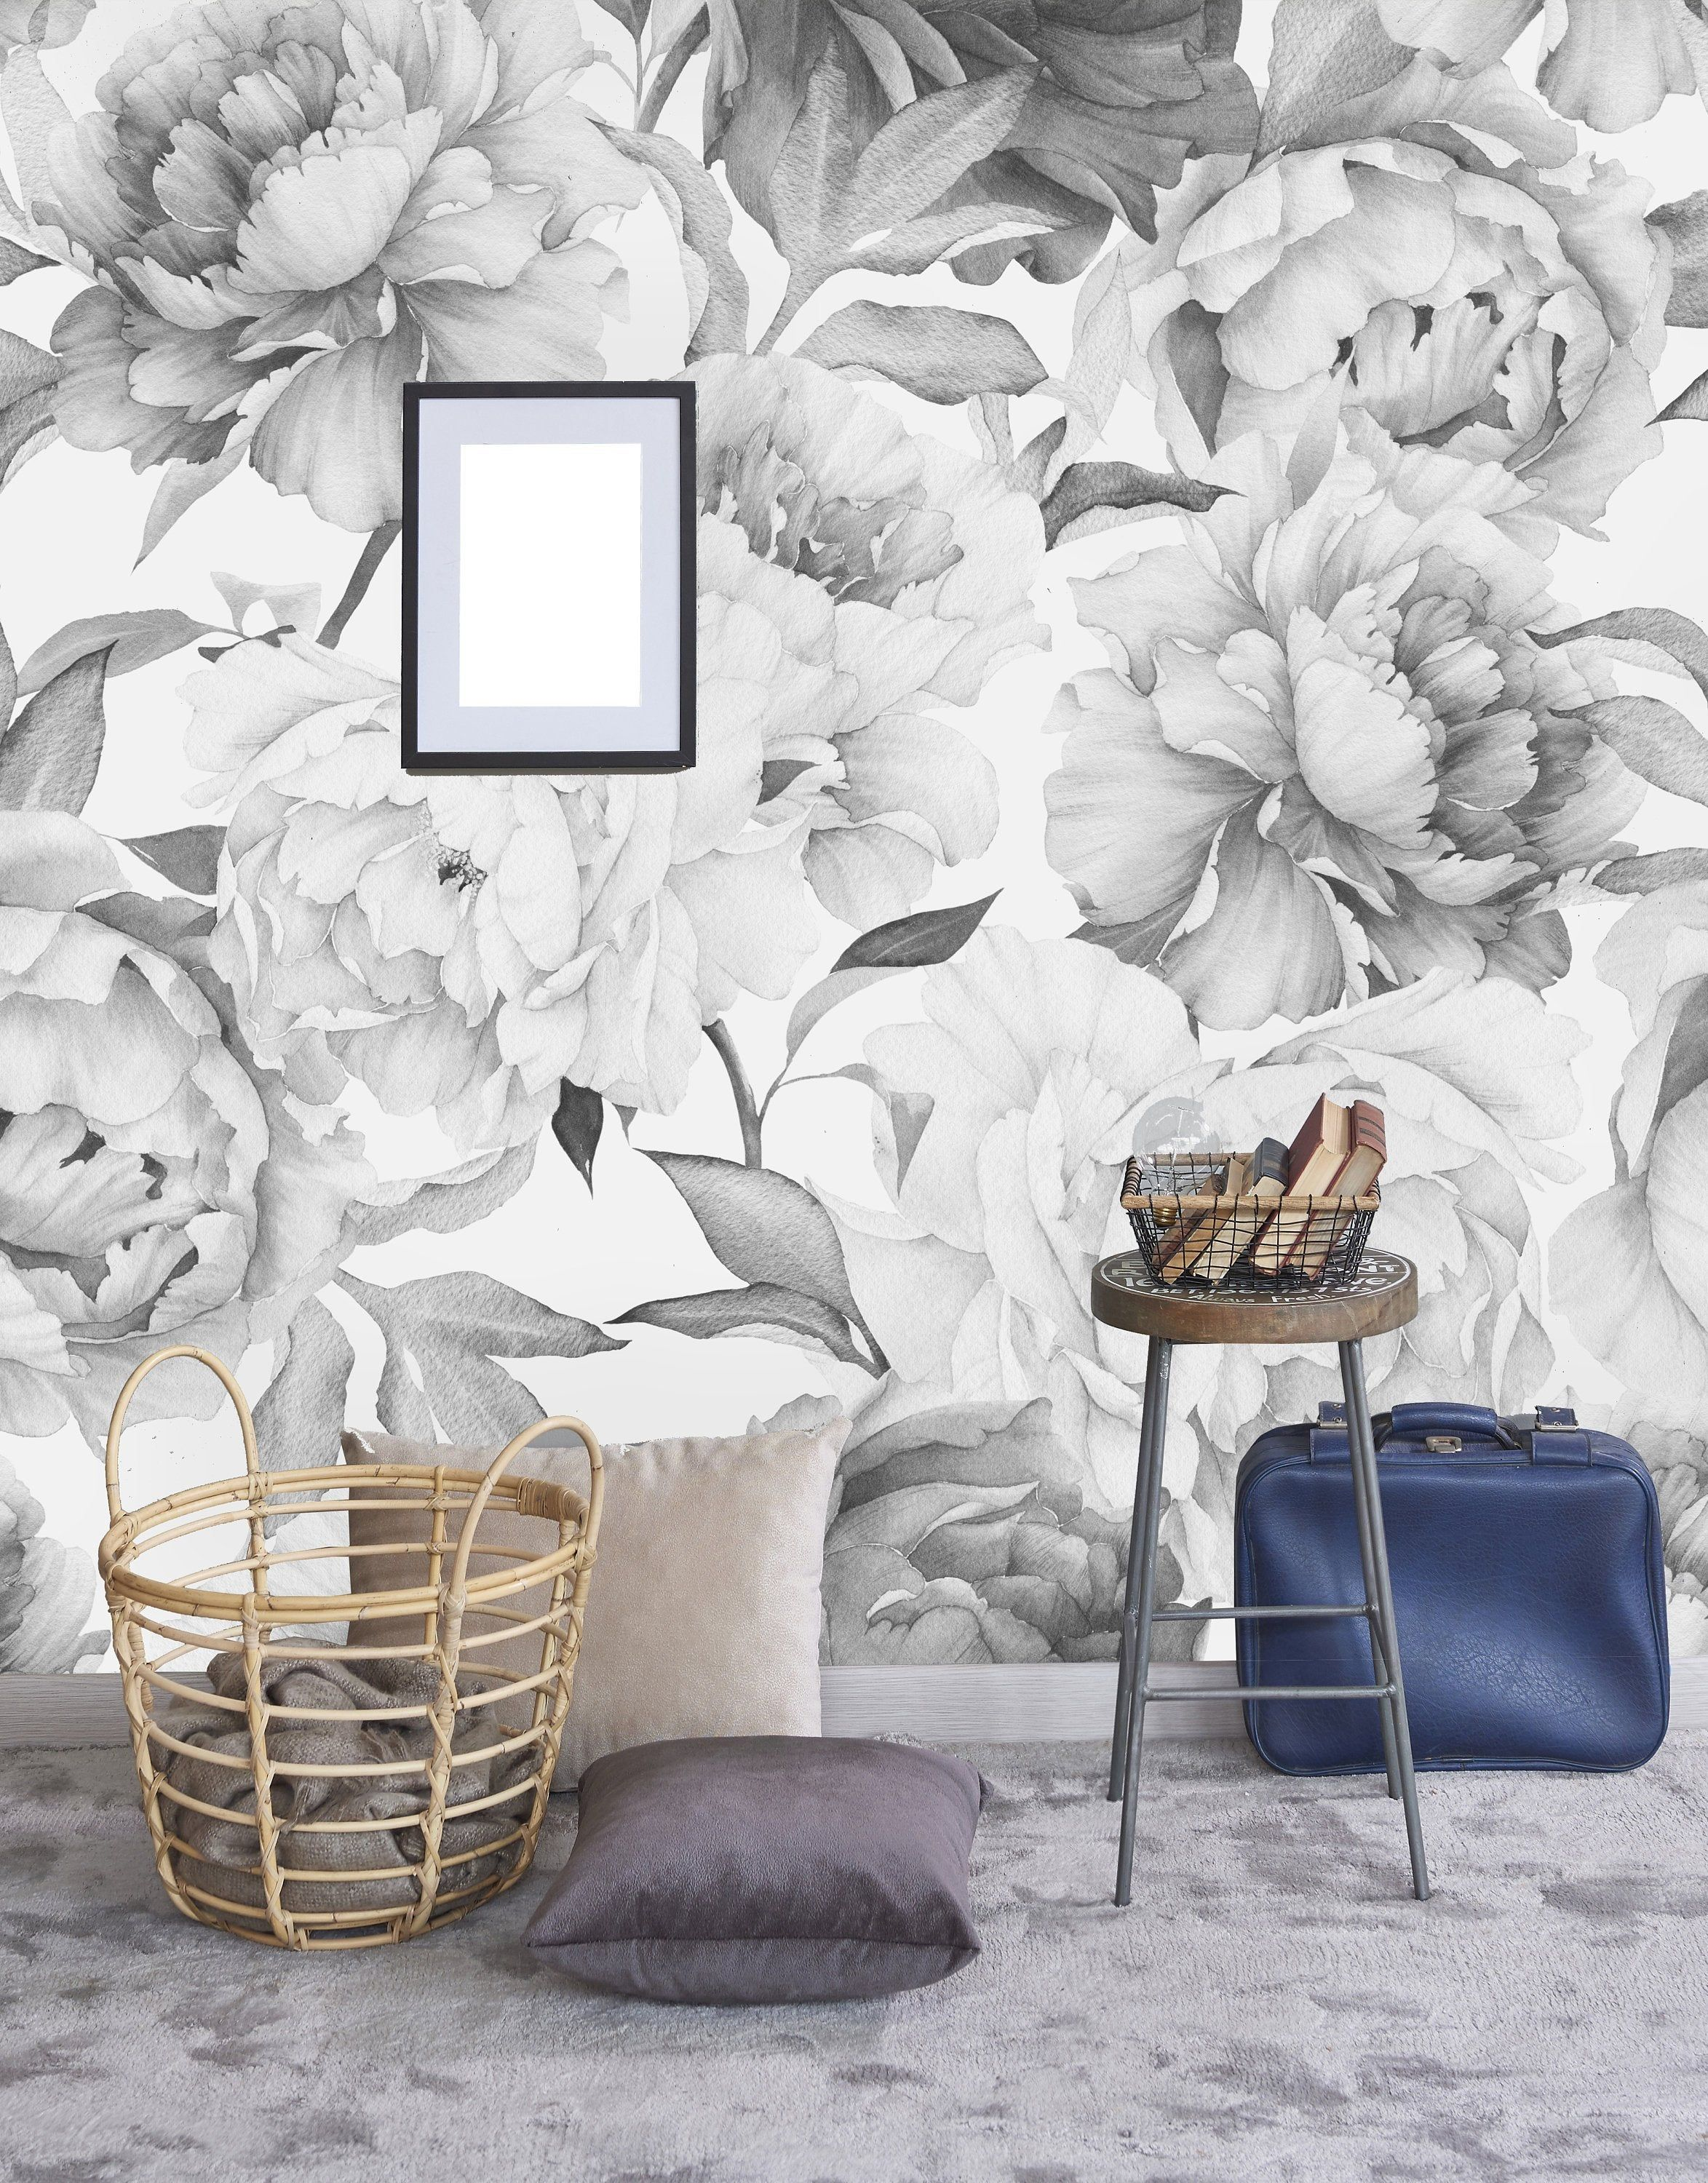 Giant Black And White Peony Removable Wallpaper Peel And Stick Etsy Removable Wallpaper Wall Wallpaper Decor